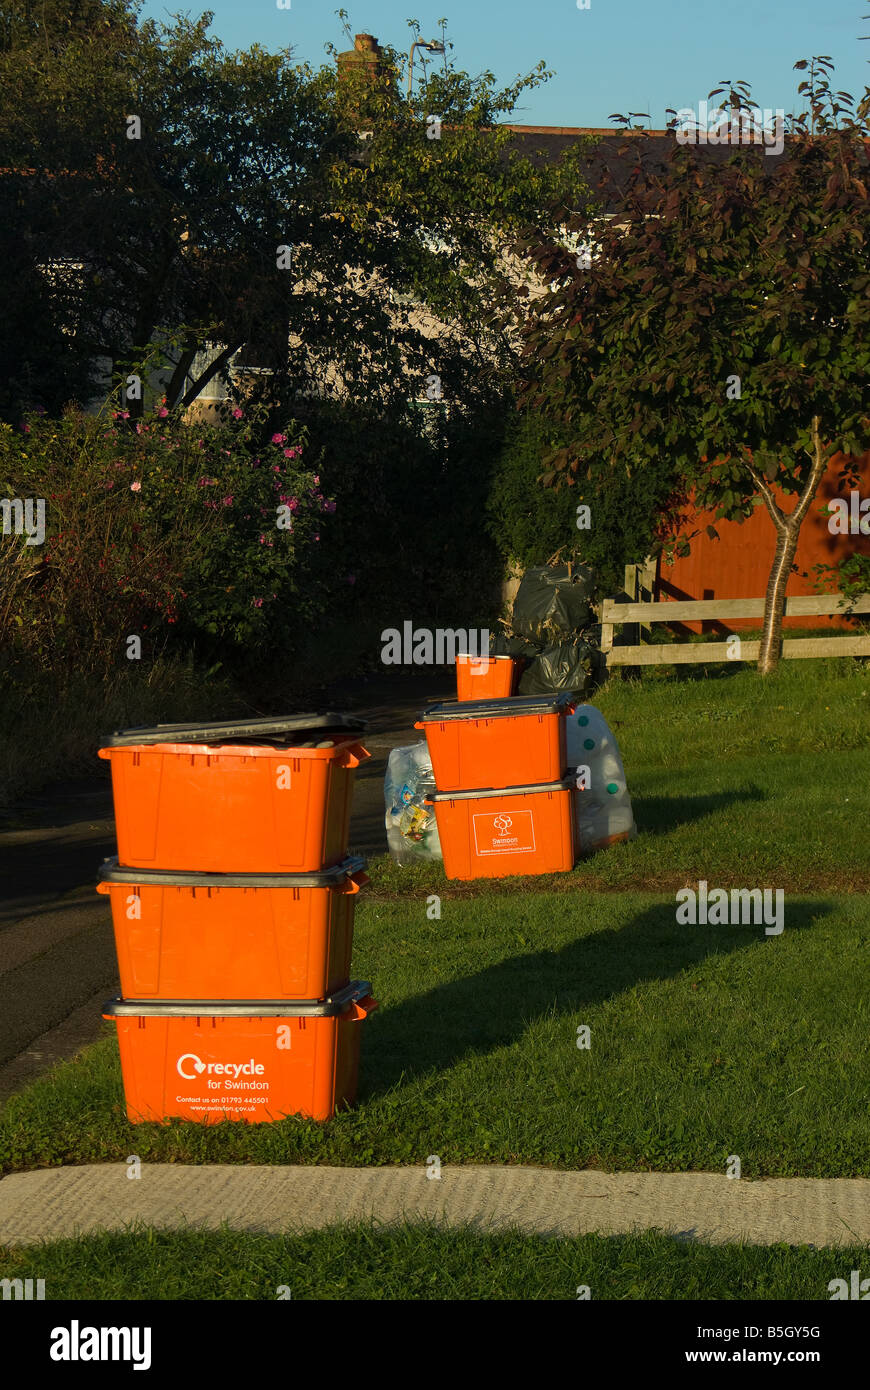 Recycling - Stock Image